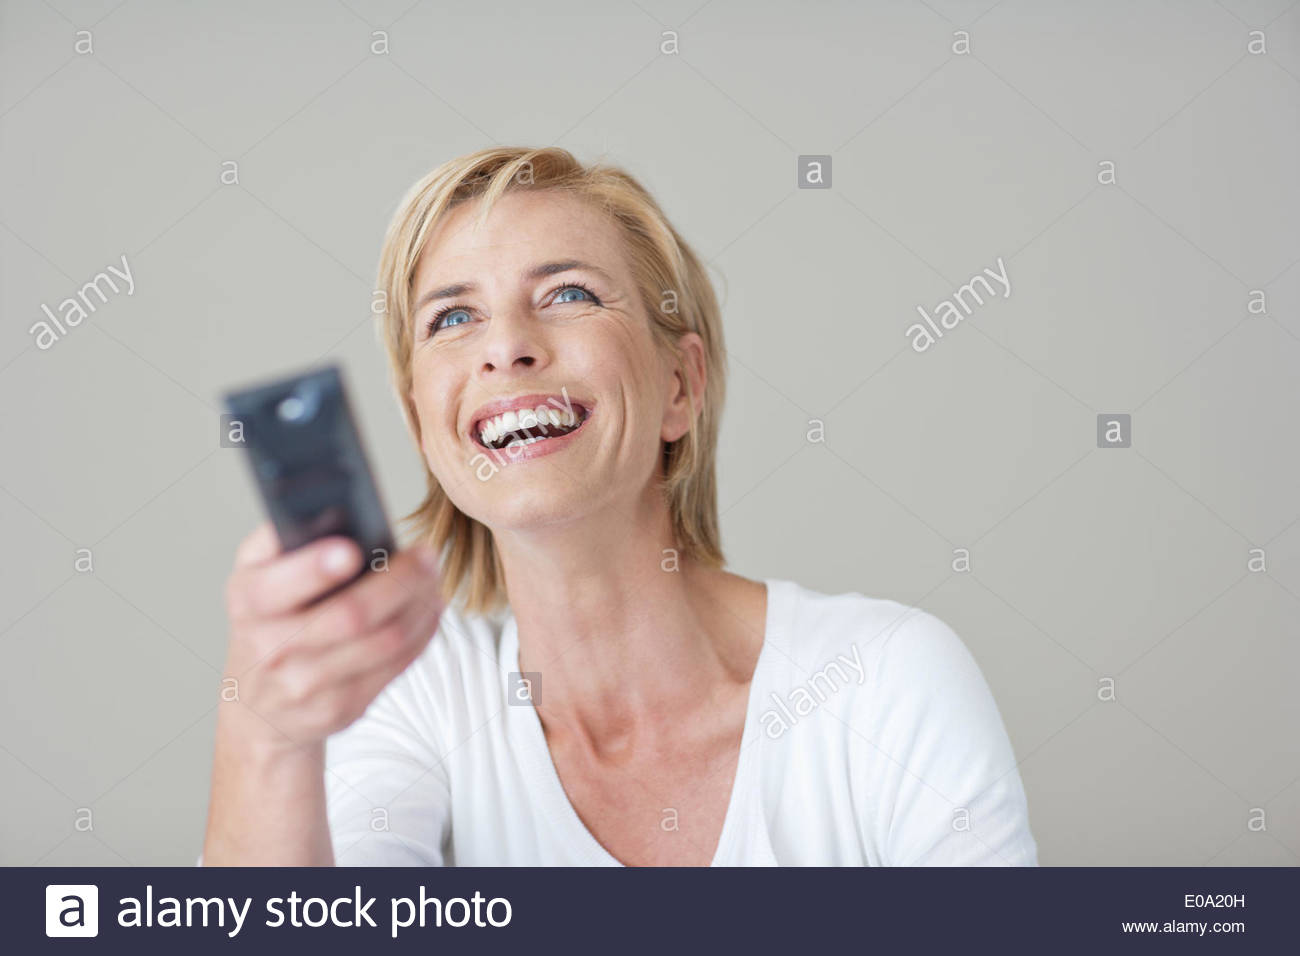 Mature woman holding remote control - Stock Image